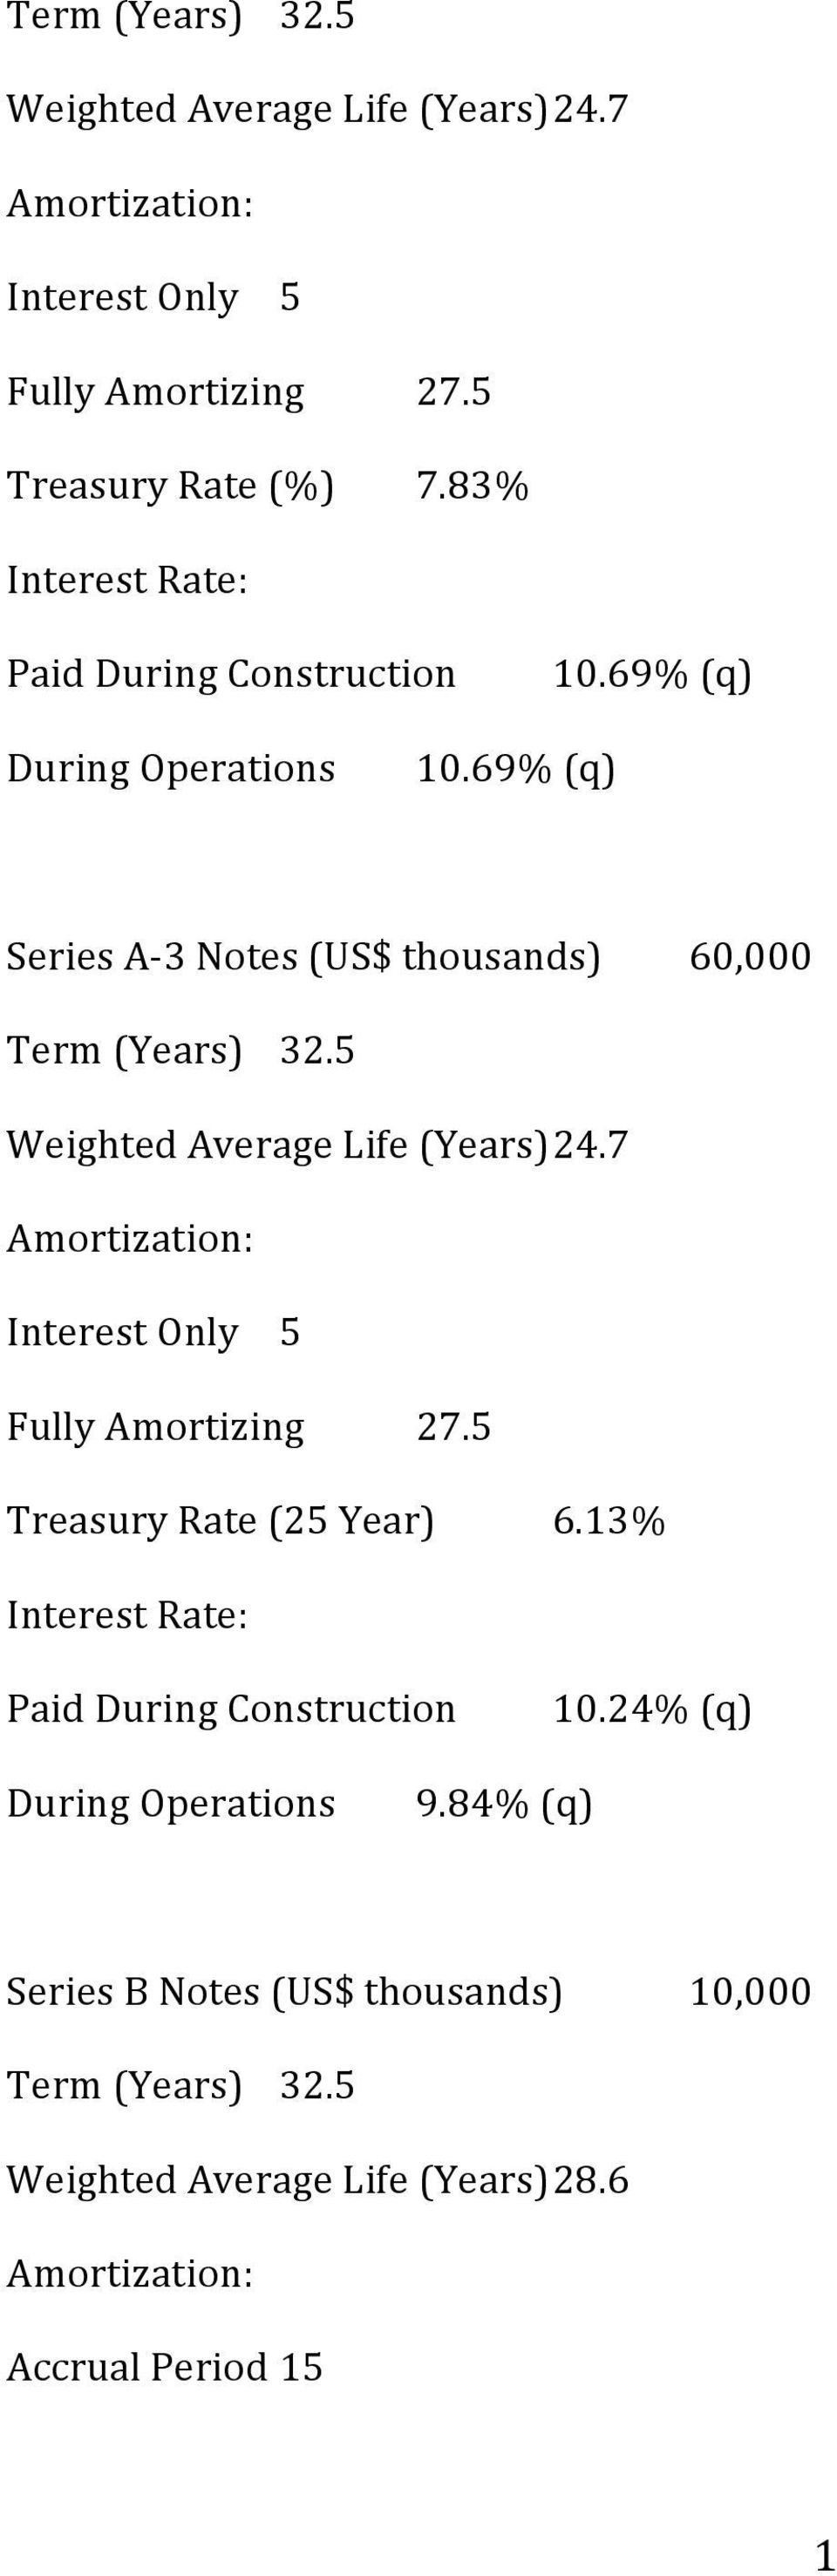 5 Weighted Average Life (Years) 24.7 Amortization: Interest Only 5 Fully Amortizing 27.5 Treasury Rate (25 Year) 6.